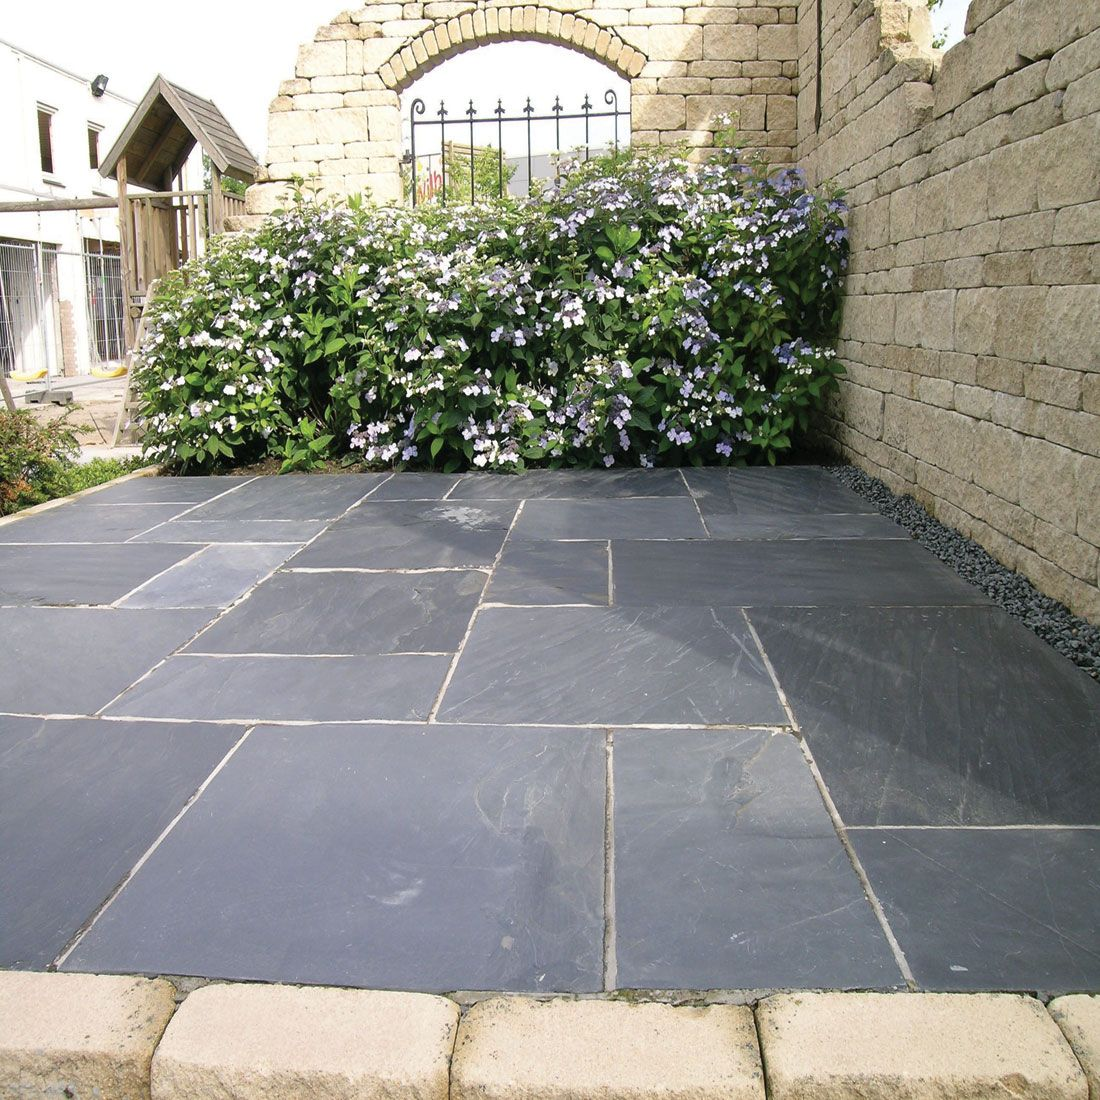 Gray patio stone google search gardens patios for Paved garden designs ideas